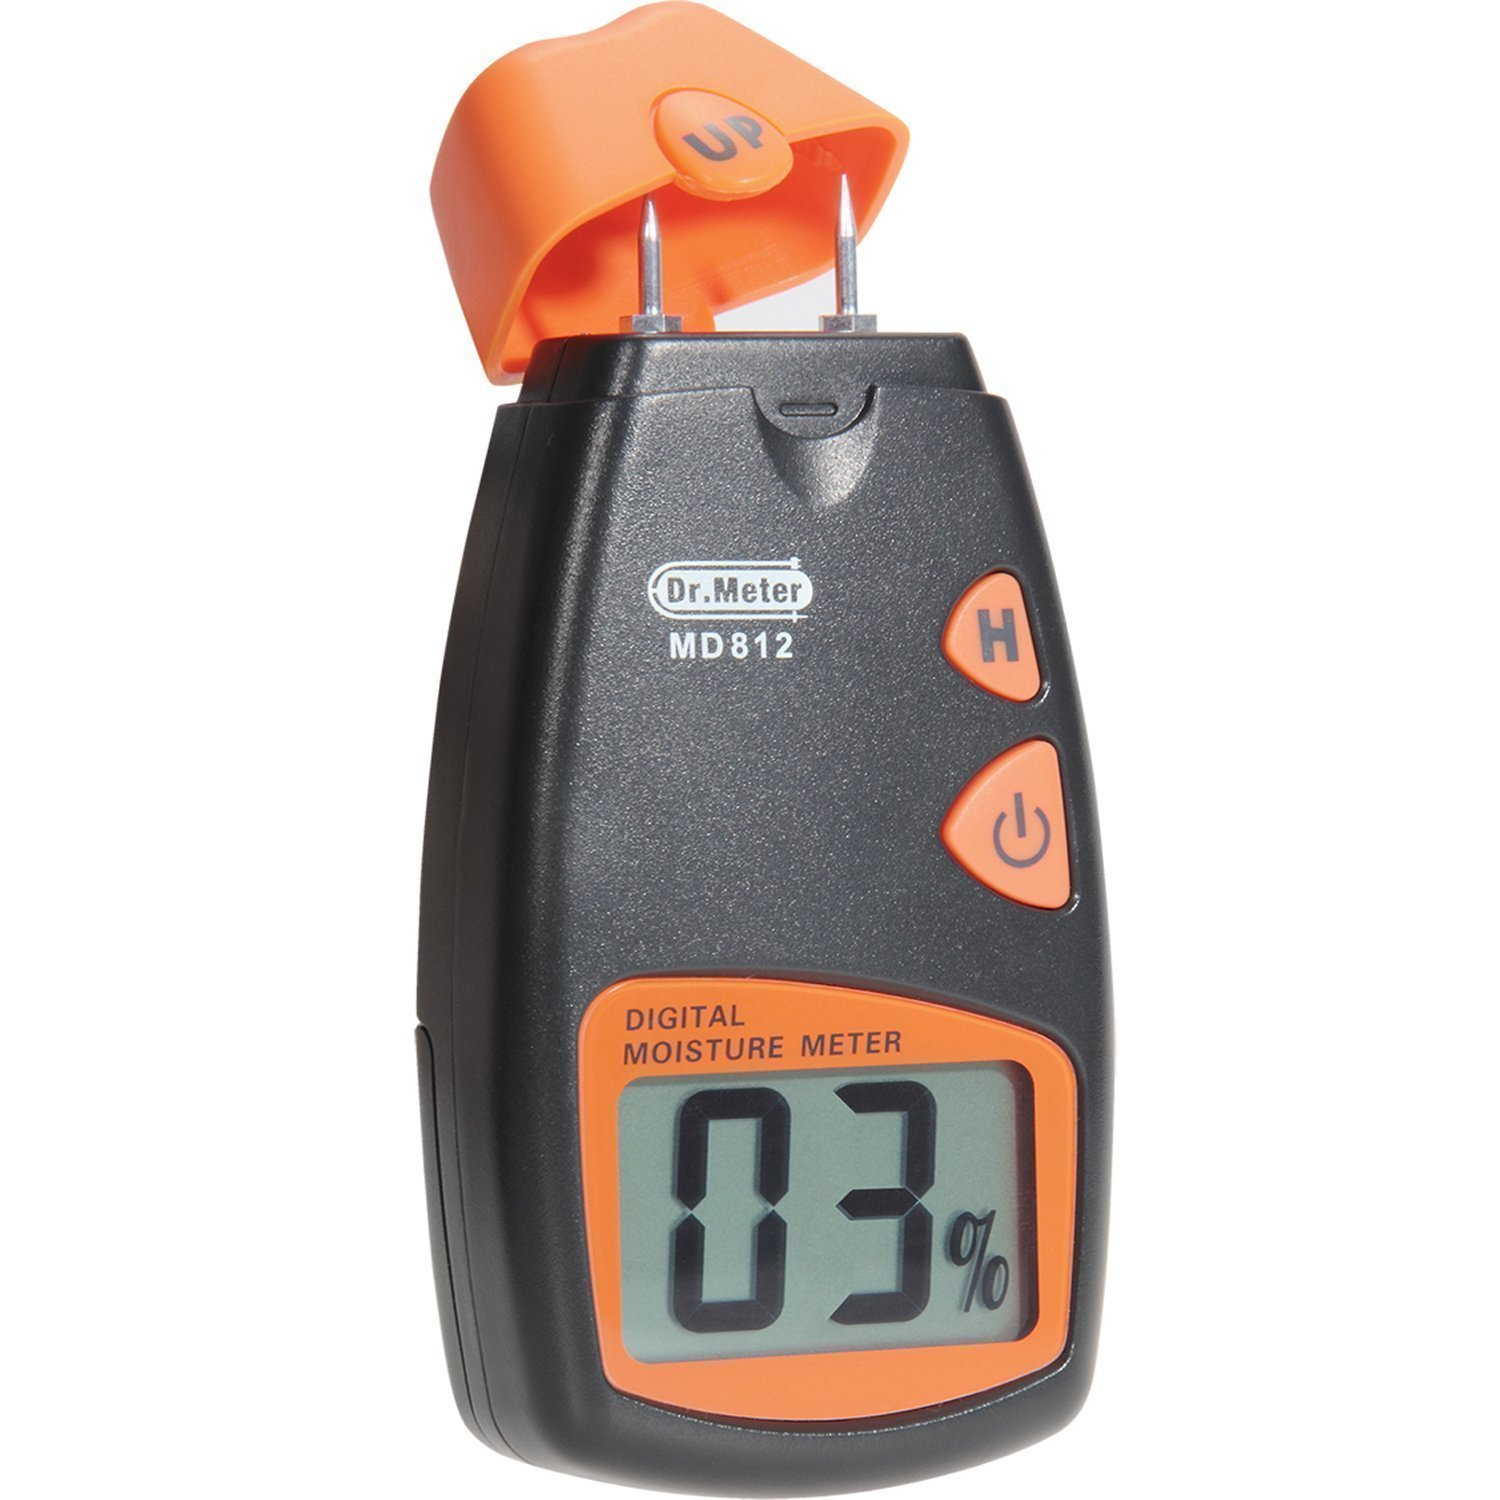 Wood Moisture Meter, Dr.meter Digital Portable Wood Water Moisture Tester, Digital LCD Display with 2 Spare Sensor Pins and one 9V Battery(Both Included) Range 5% - 40%, Accuracy: +/-1%, MD812